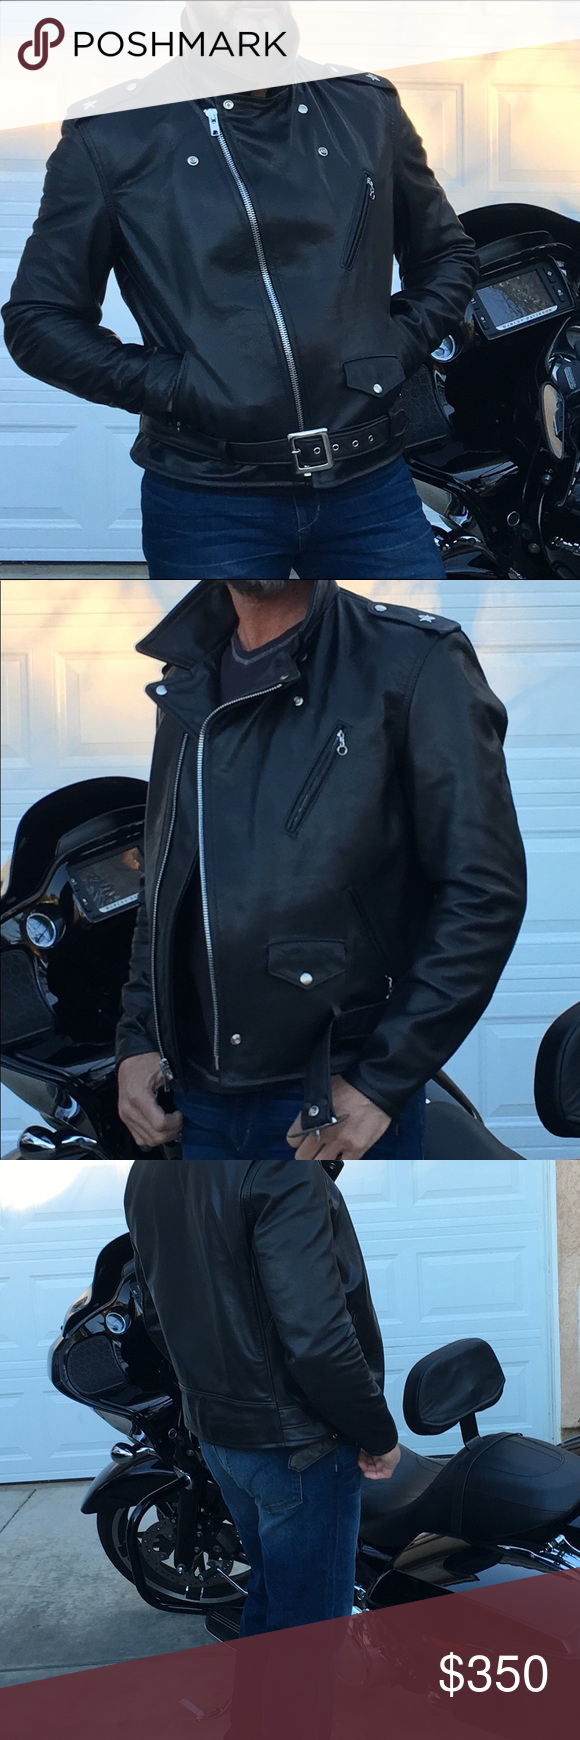 (sold) men's leather motorcycle jacket Leather